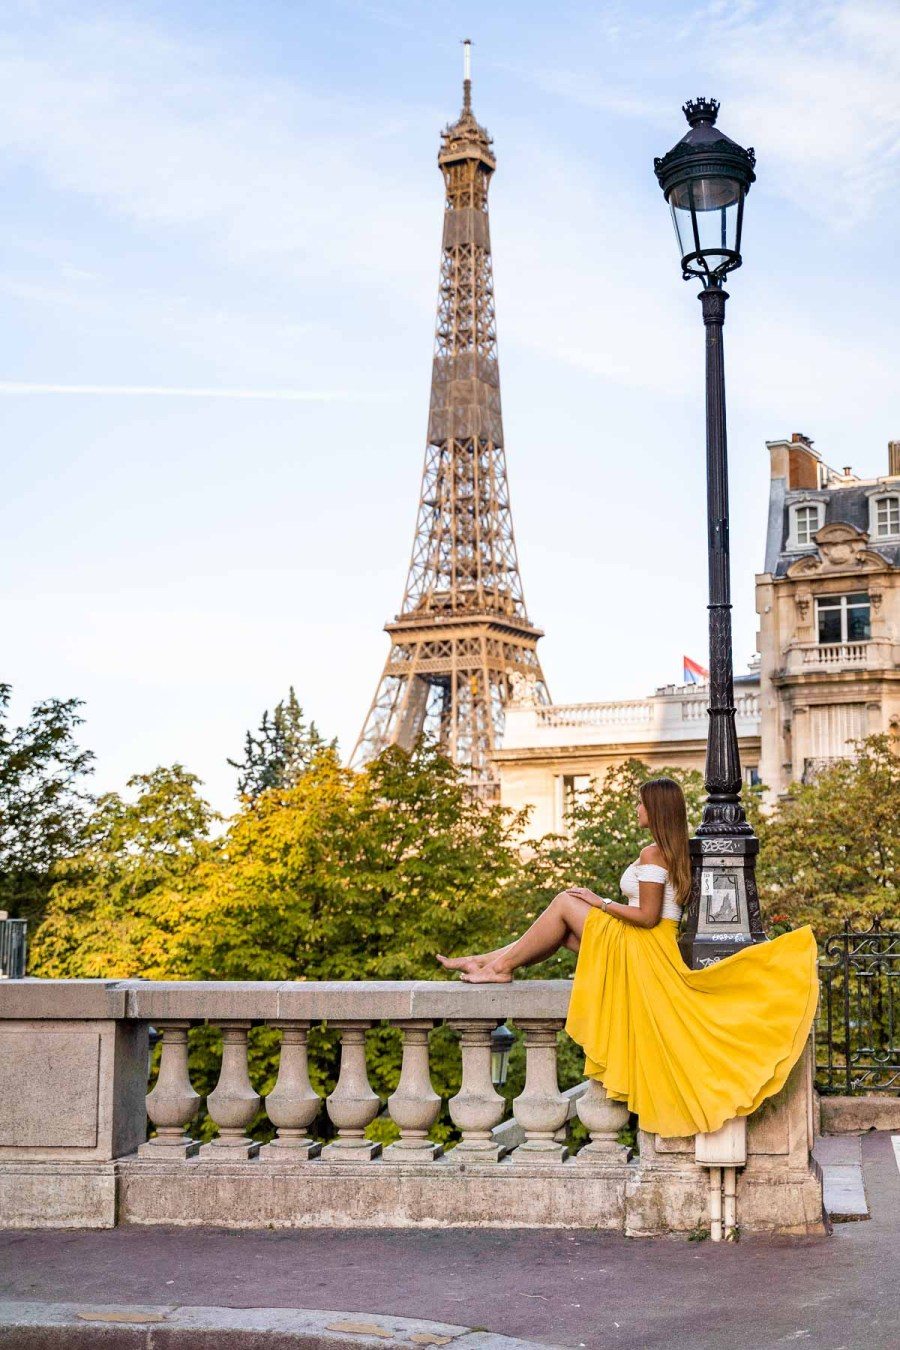 Girl in a yellow skirt sitting in front of the Eiffel Tower at Avenue de Camoens, Paris